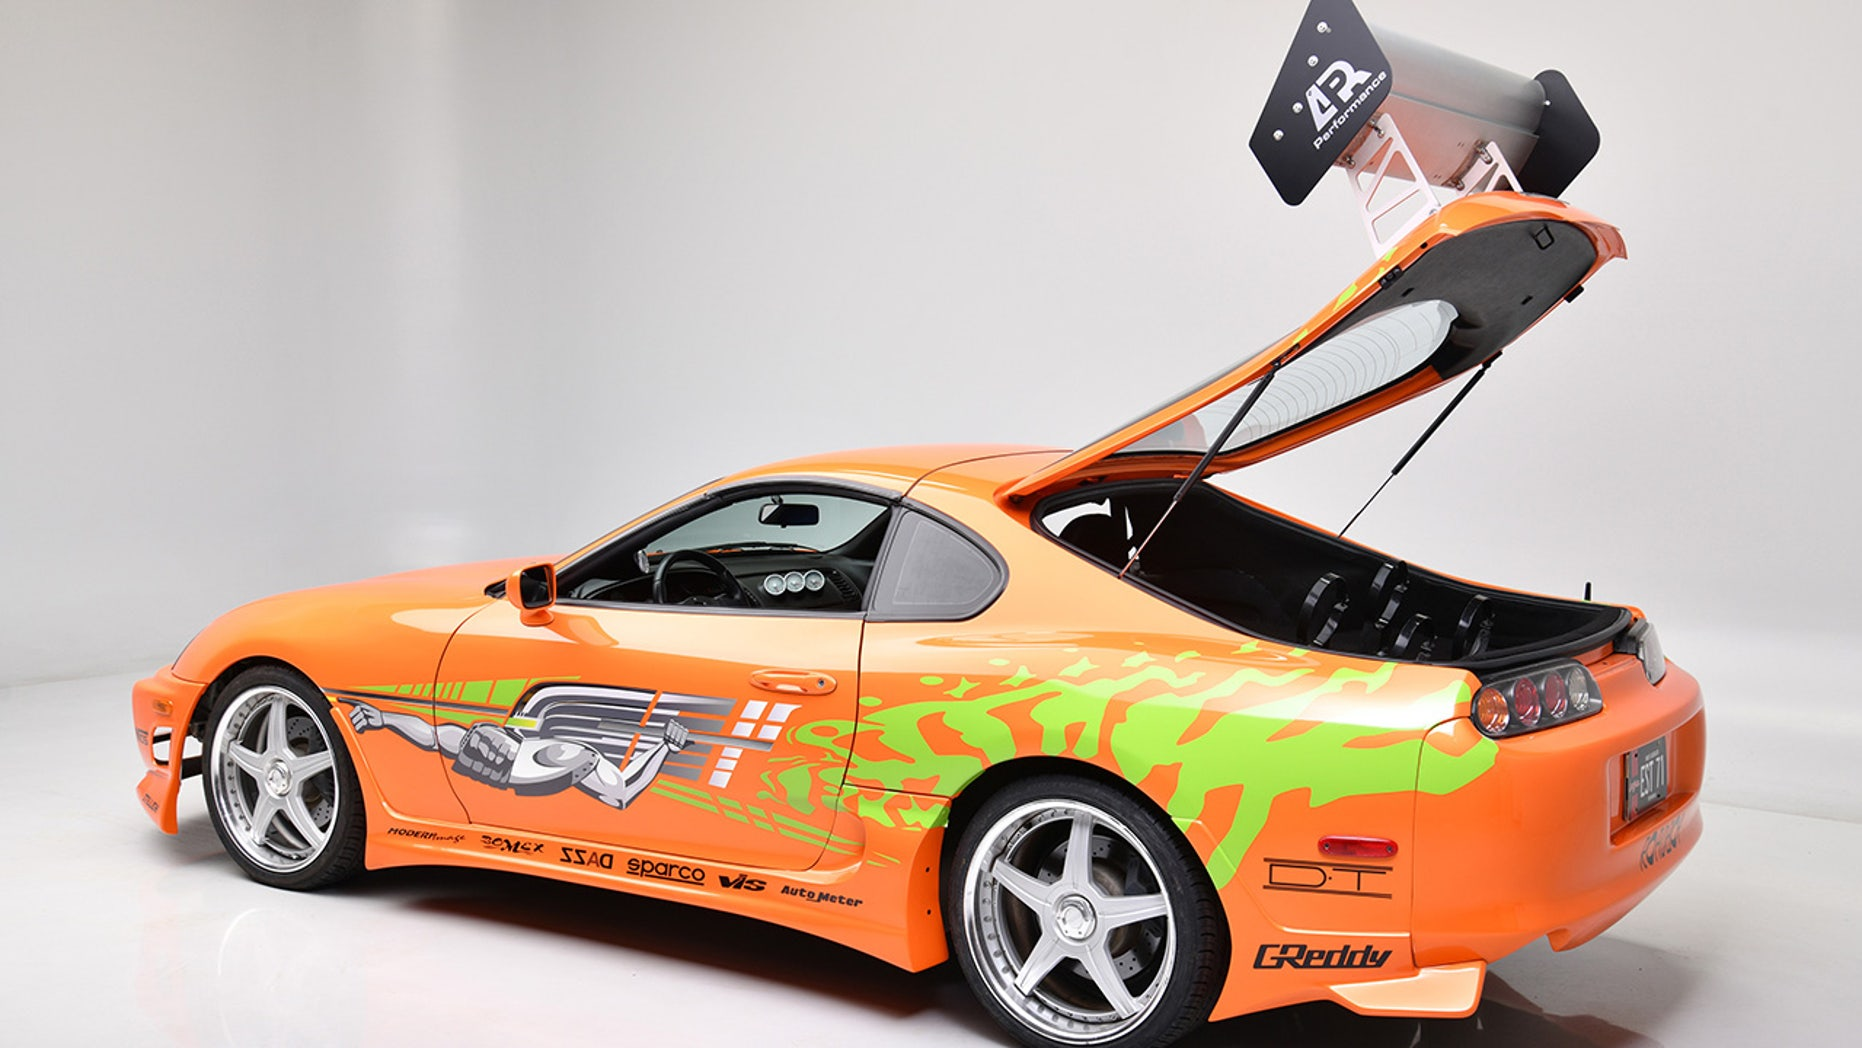 Paul Walker's 'Fast and Furious' Toyota Supra